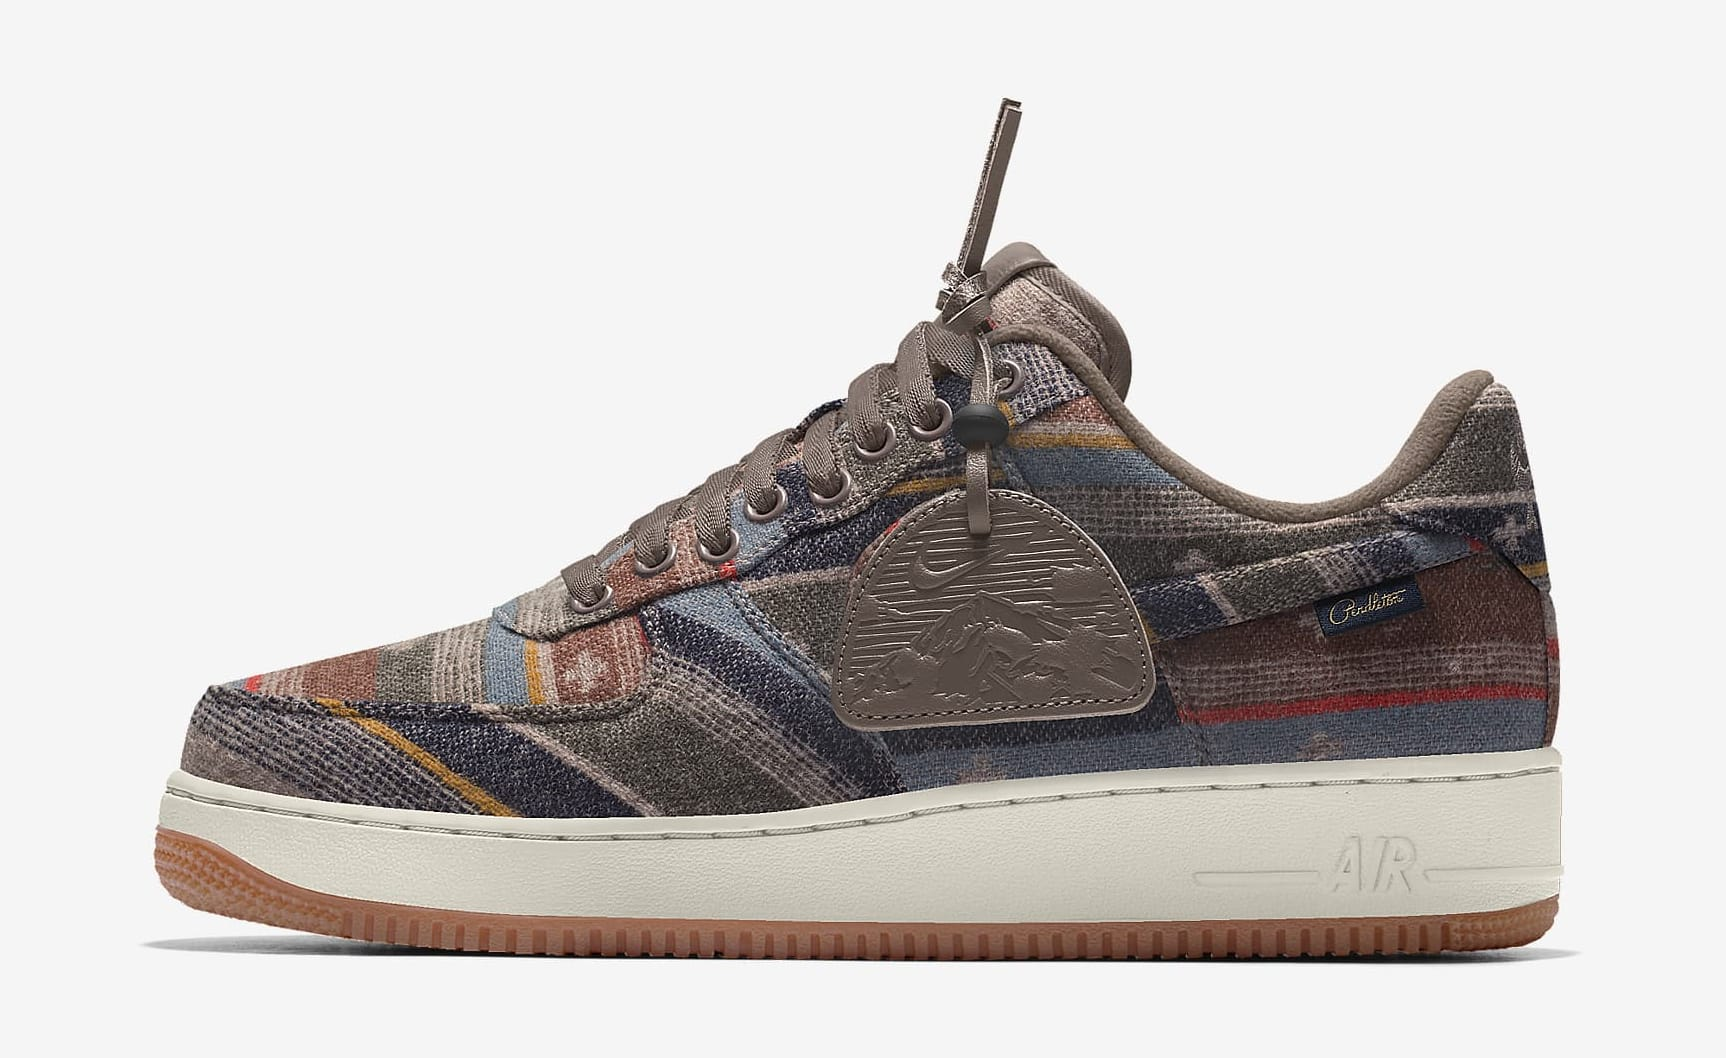 Nike Pendleton Air Force 1 Low By You Lateral